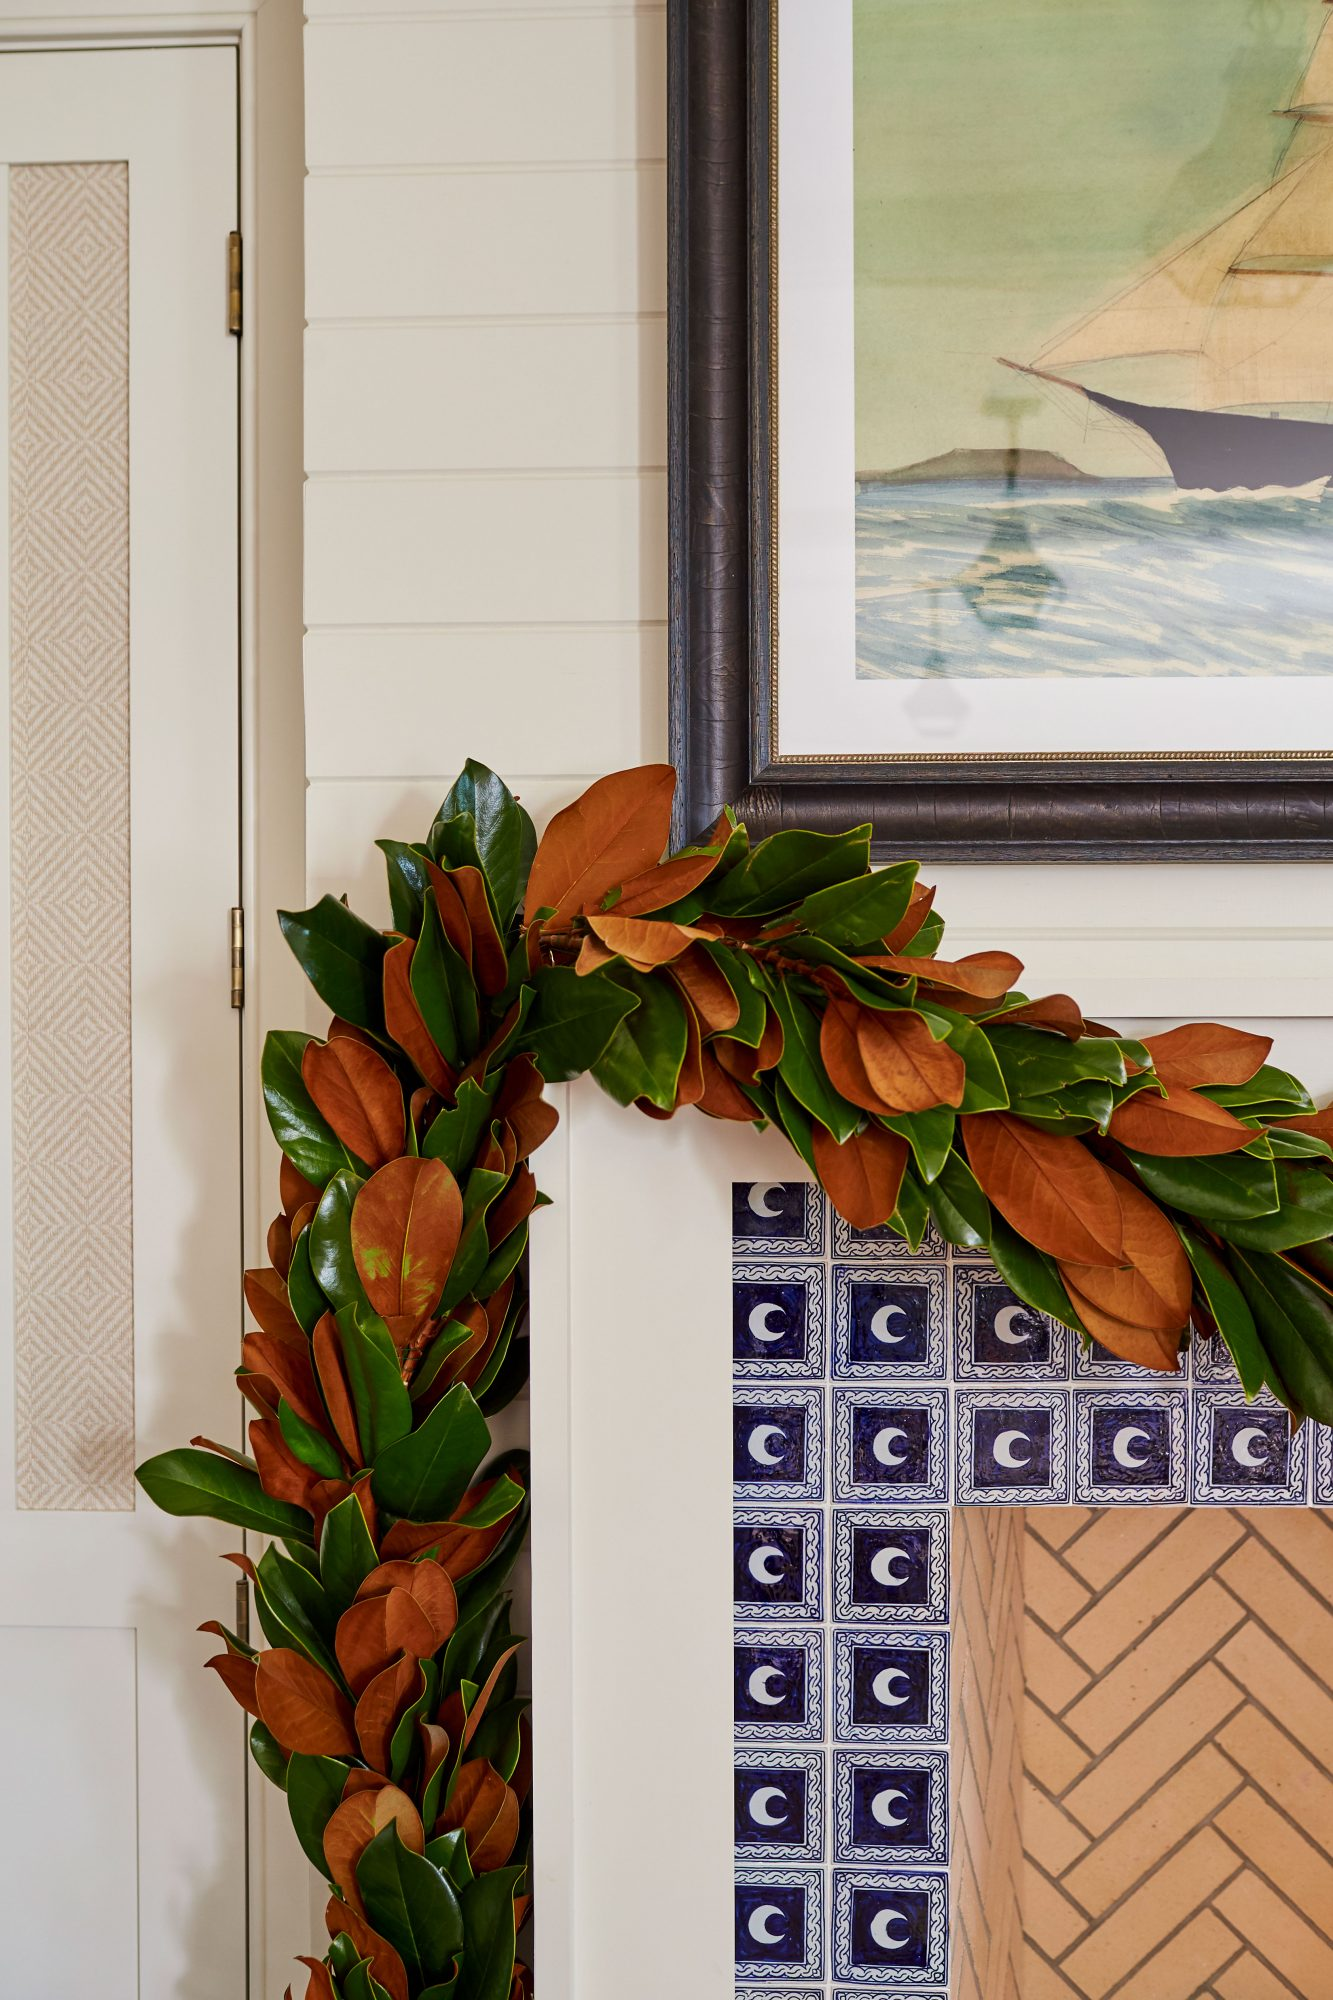 Andrew Howard's Home Decorated For Christmas Fireplace with Magnolia Garland